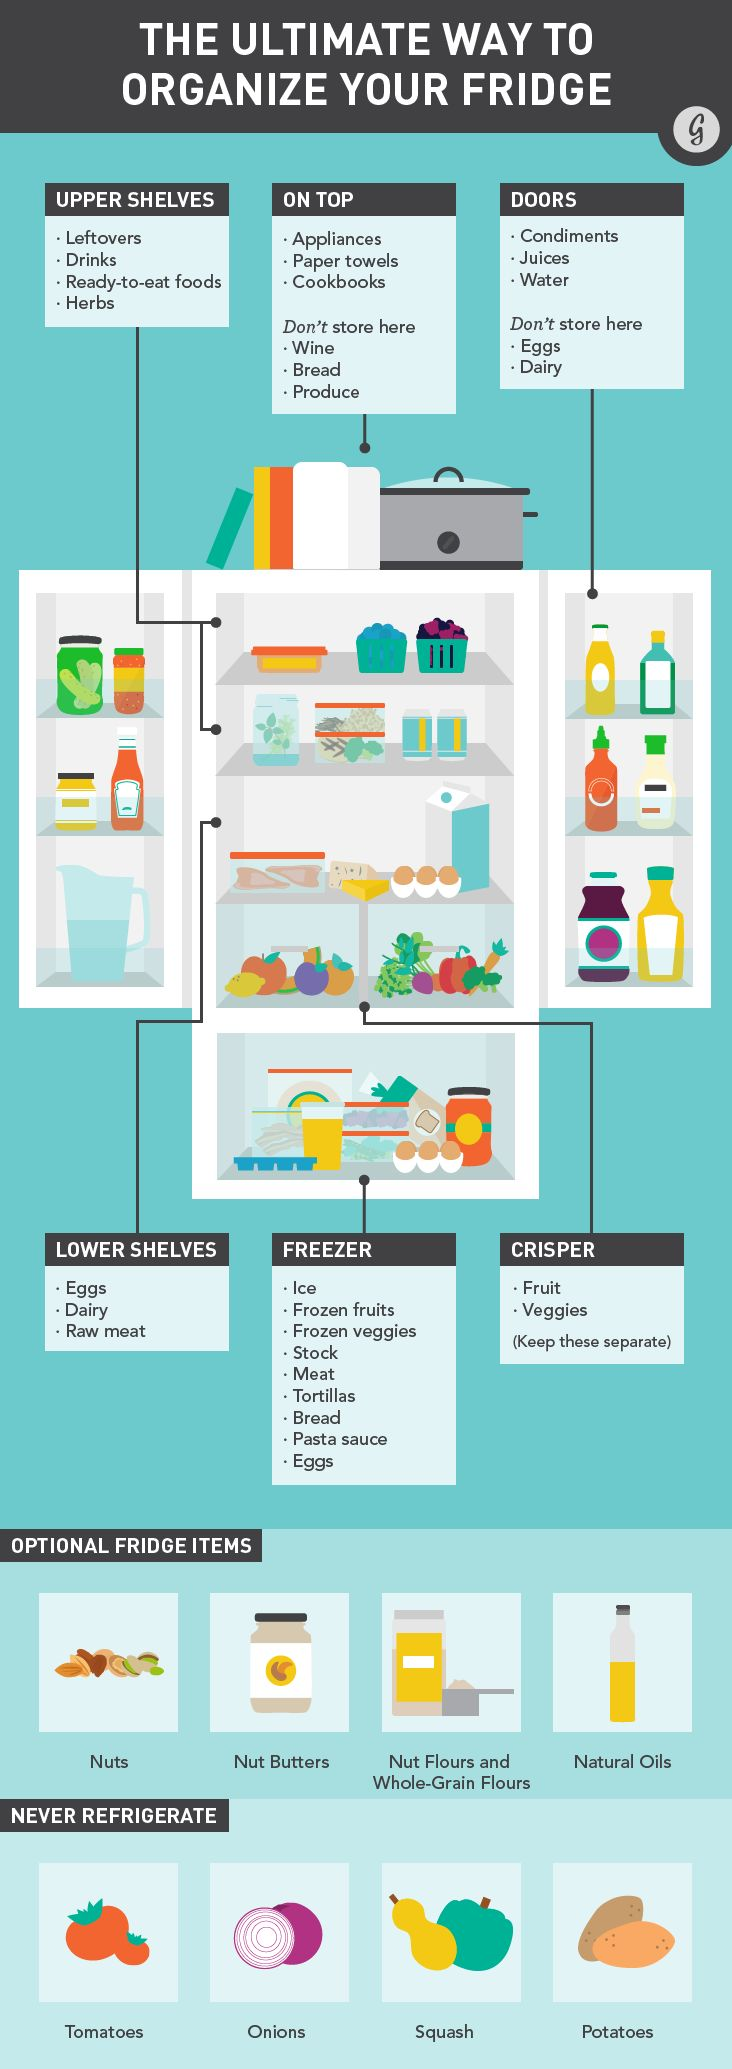 how to organize your fridge to keep food fresher longer and cut your energy bill